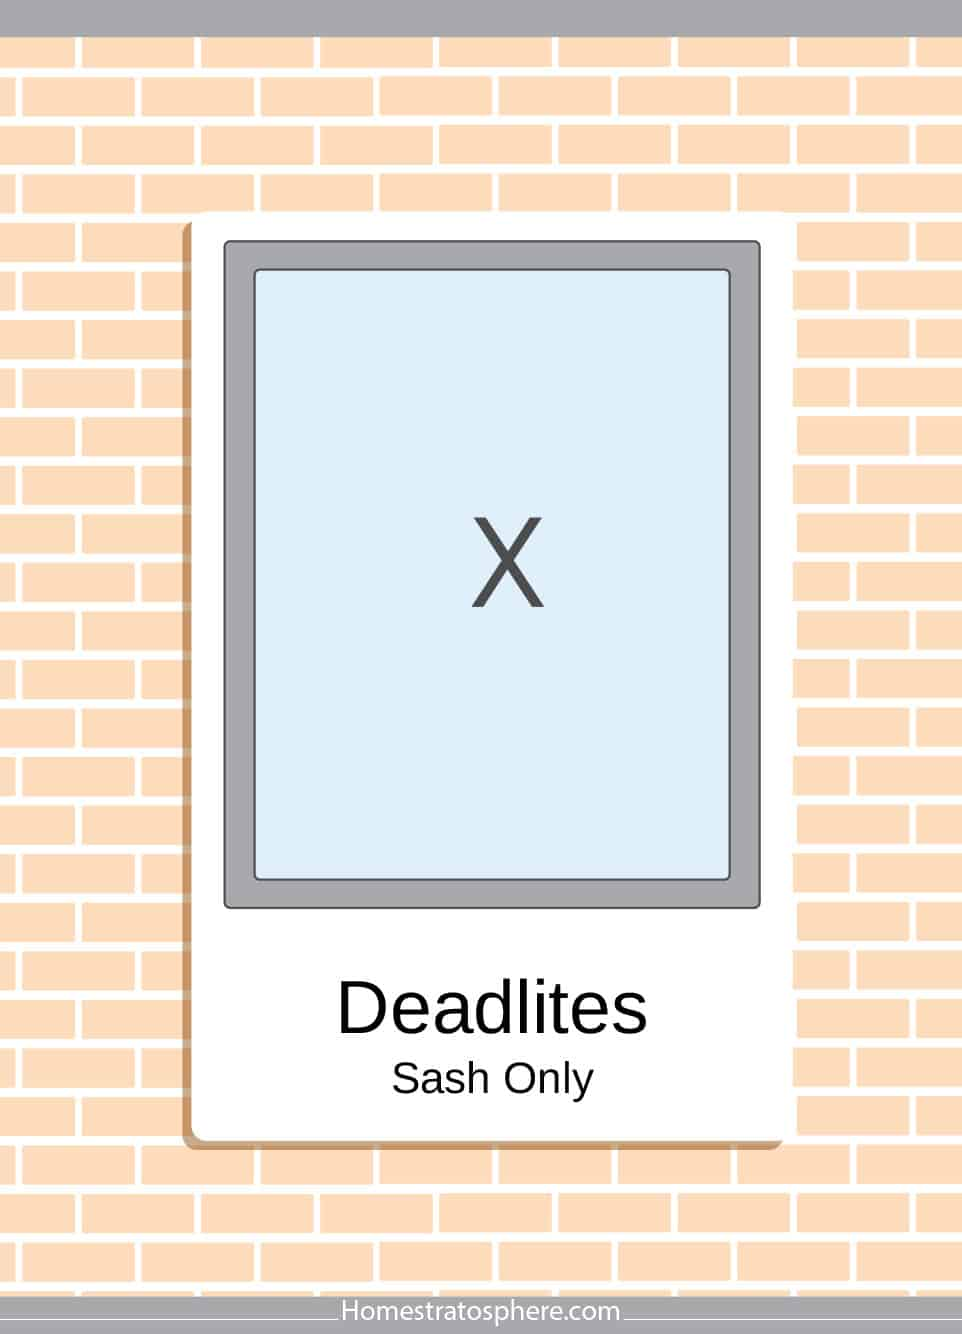 Deadlites sash only window design